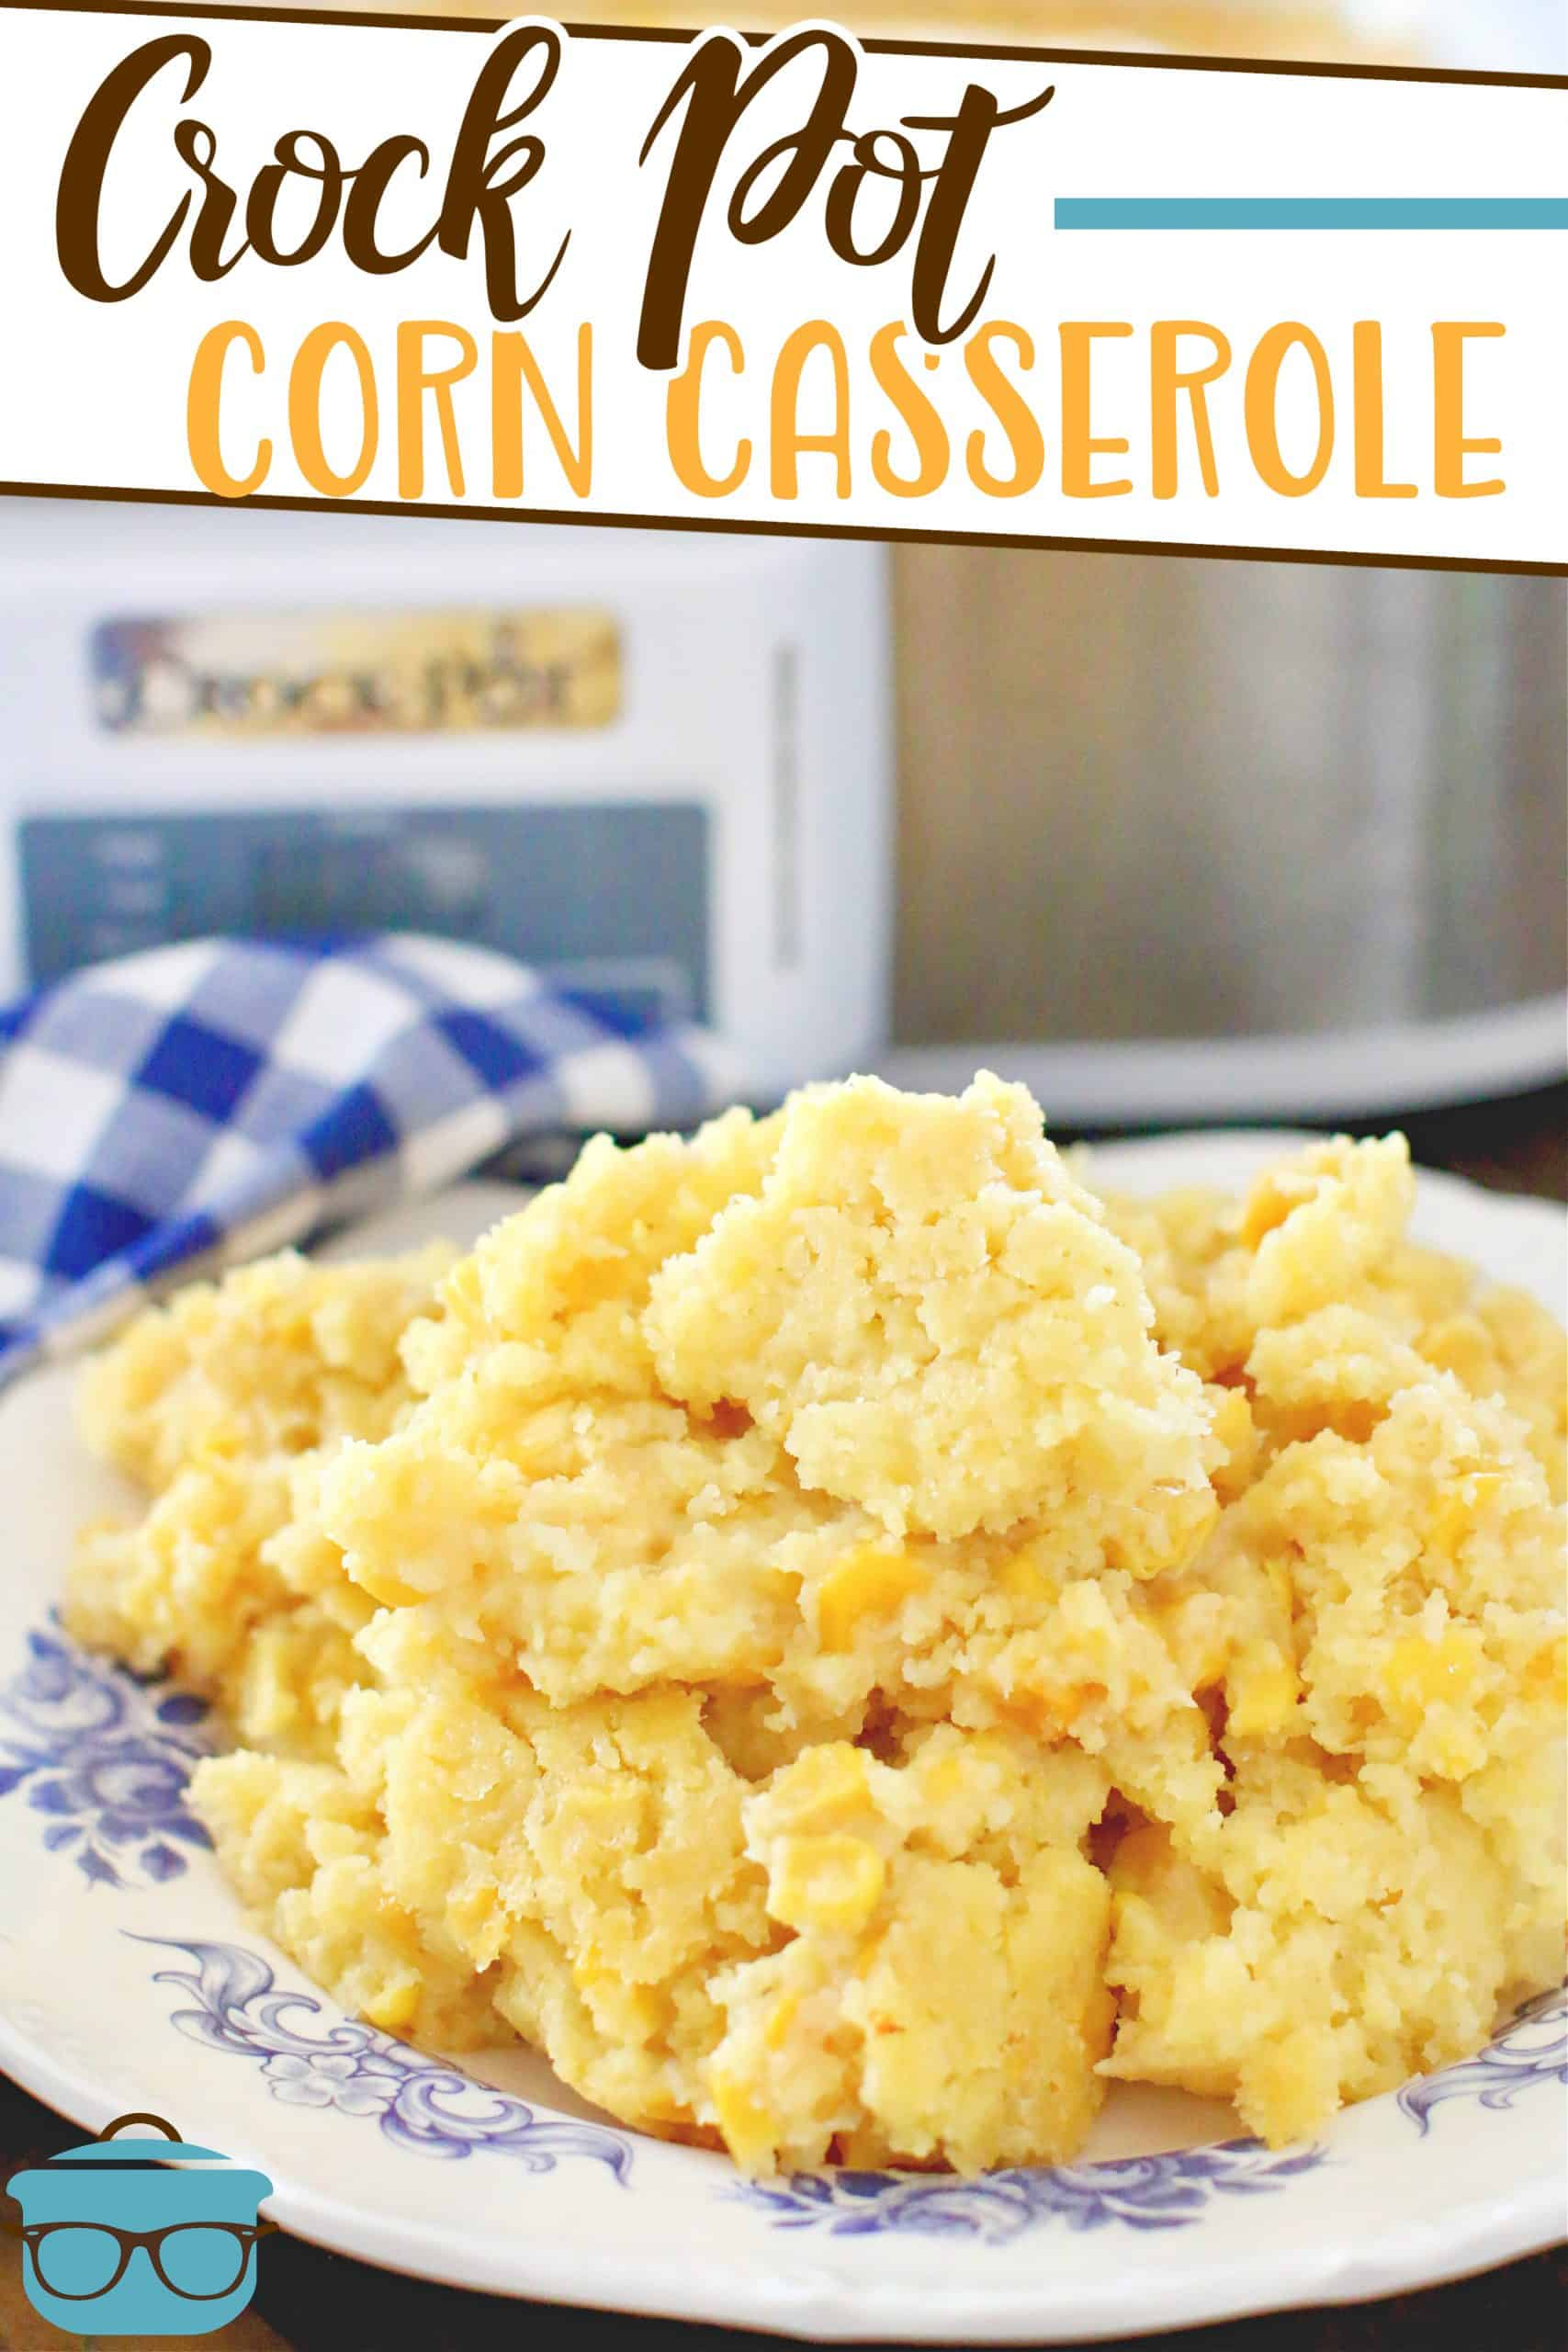 This easy Crock Pot Corn Casserole recipe is made with Jiffy corn muffin mix, canned sweet corn and is one of the best holiday side dishes!